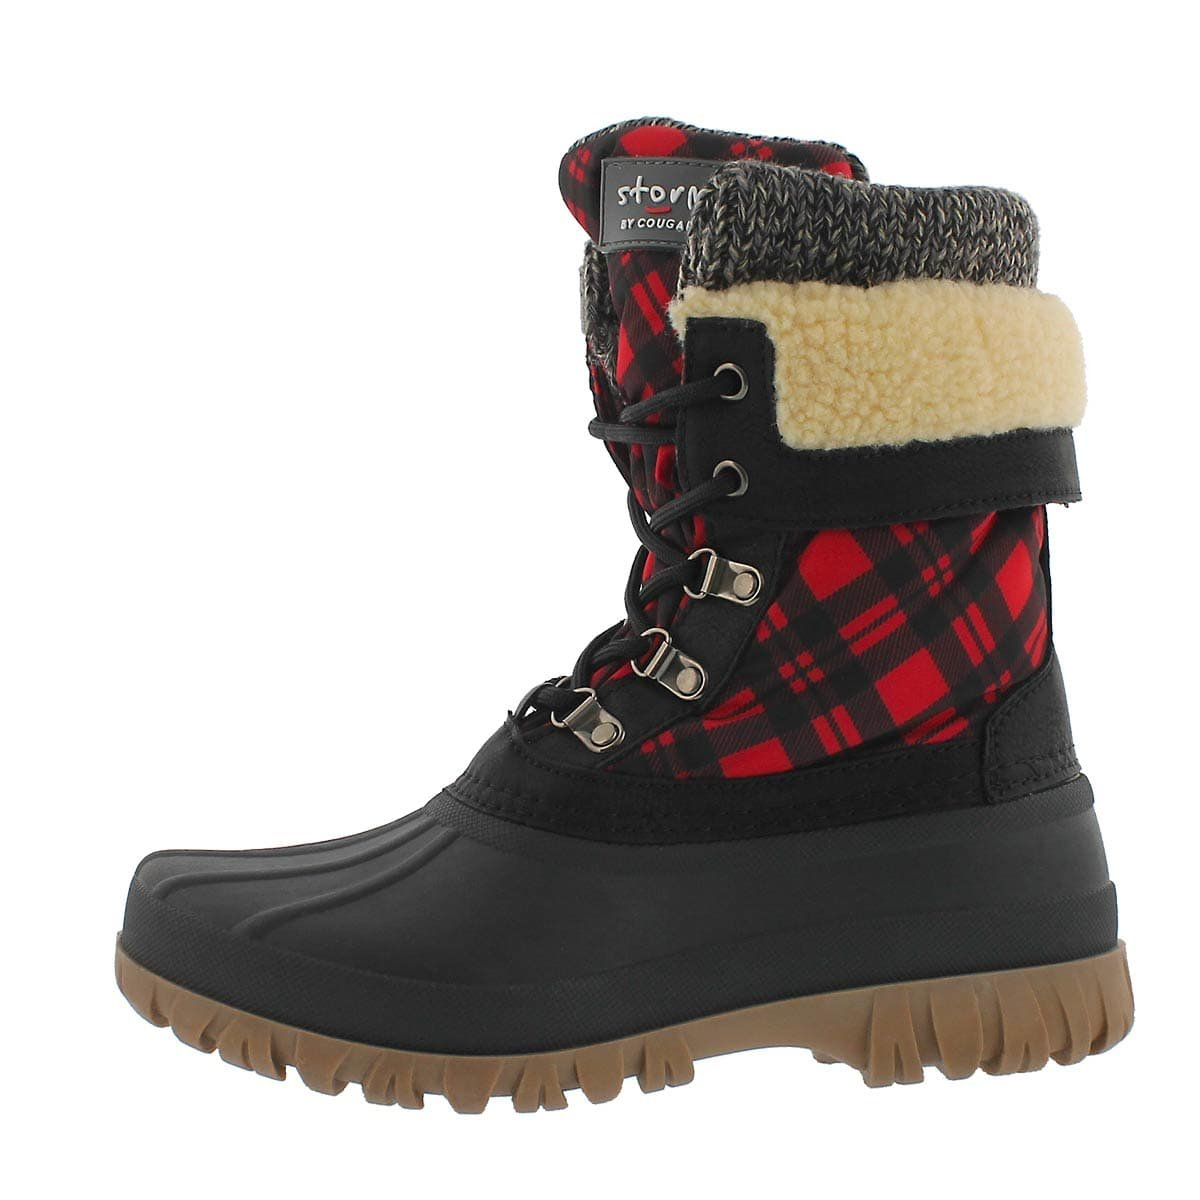 Cougar Women's Creek Lace Up Waterproof Winter Boot Red Plaid 8 M US